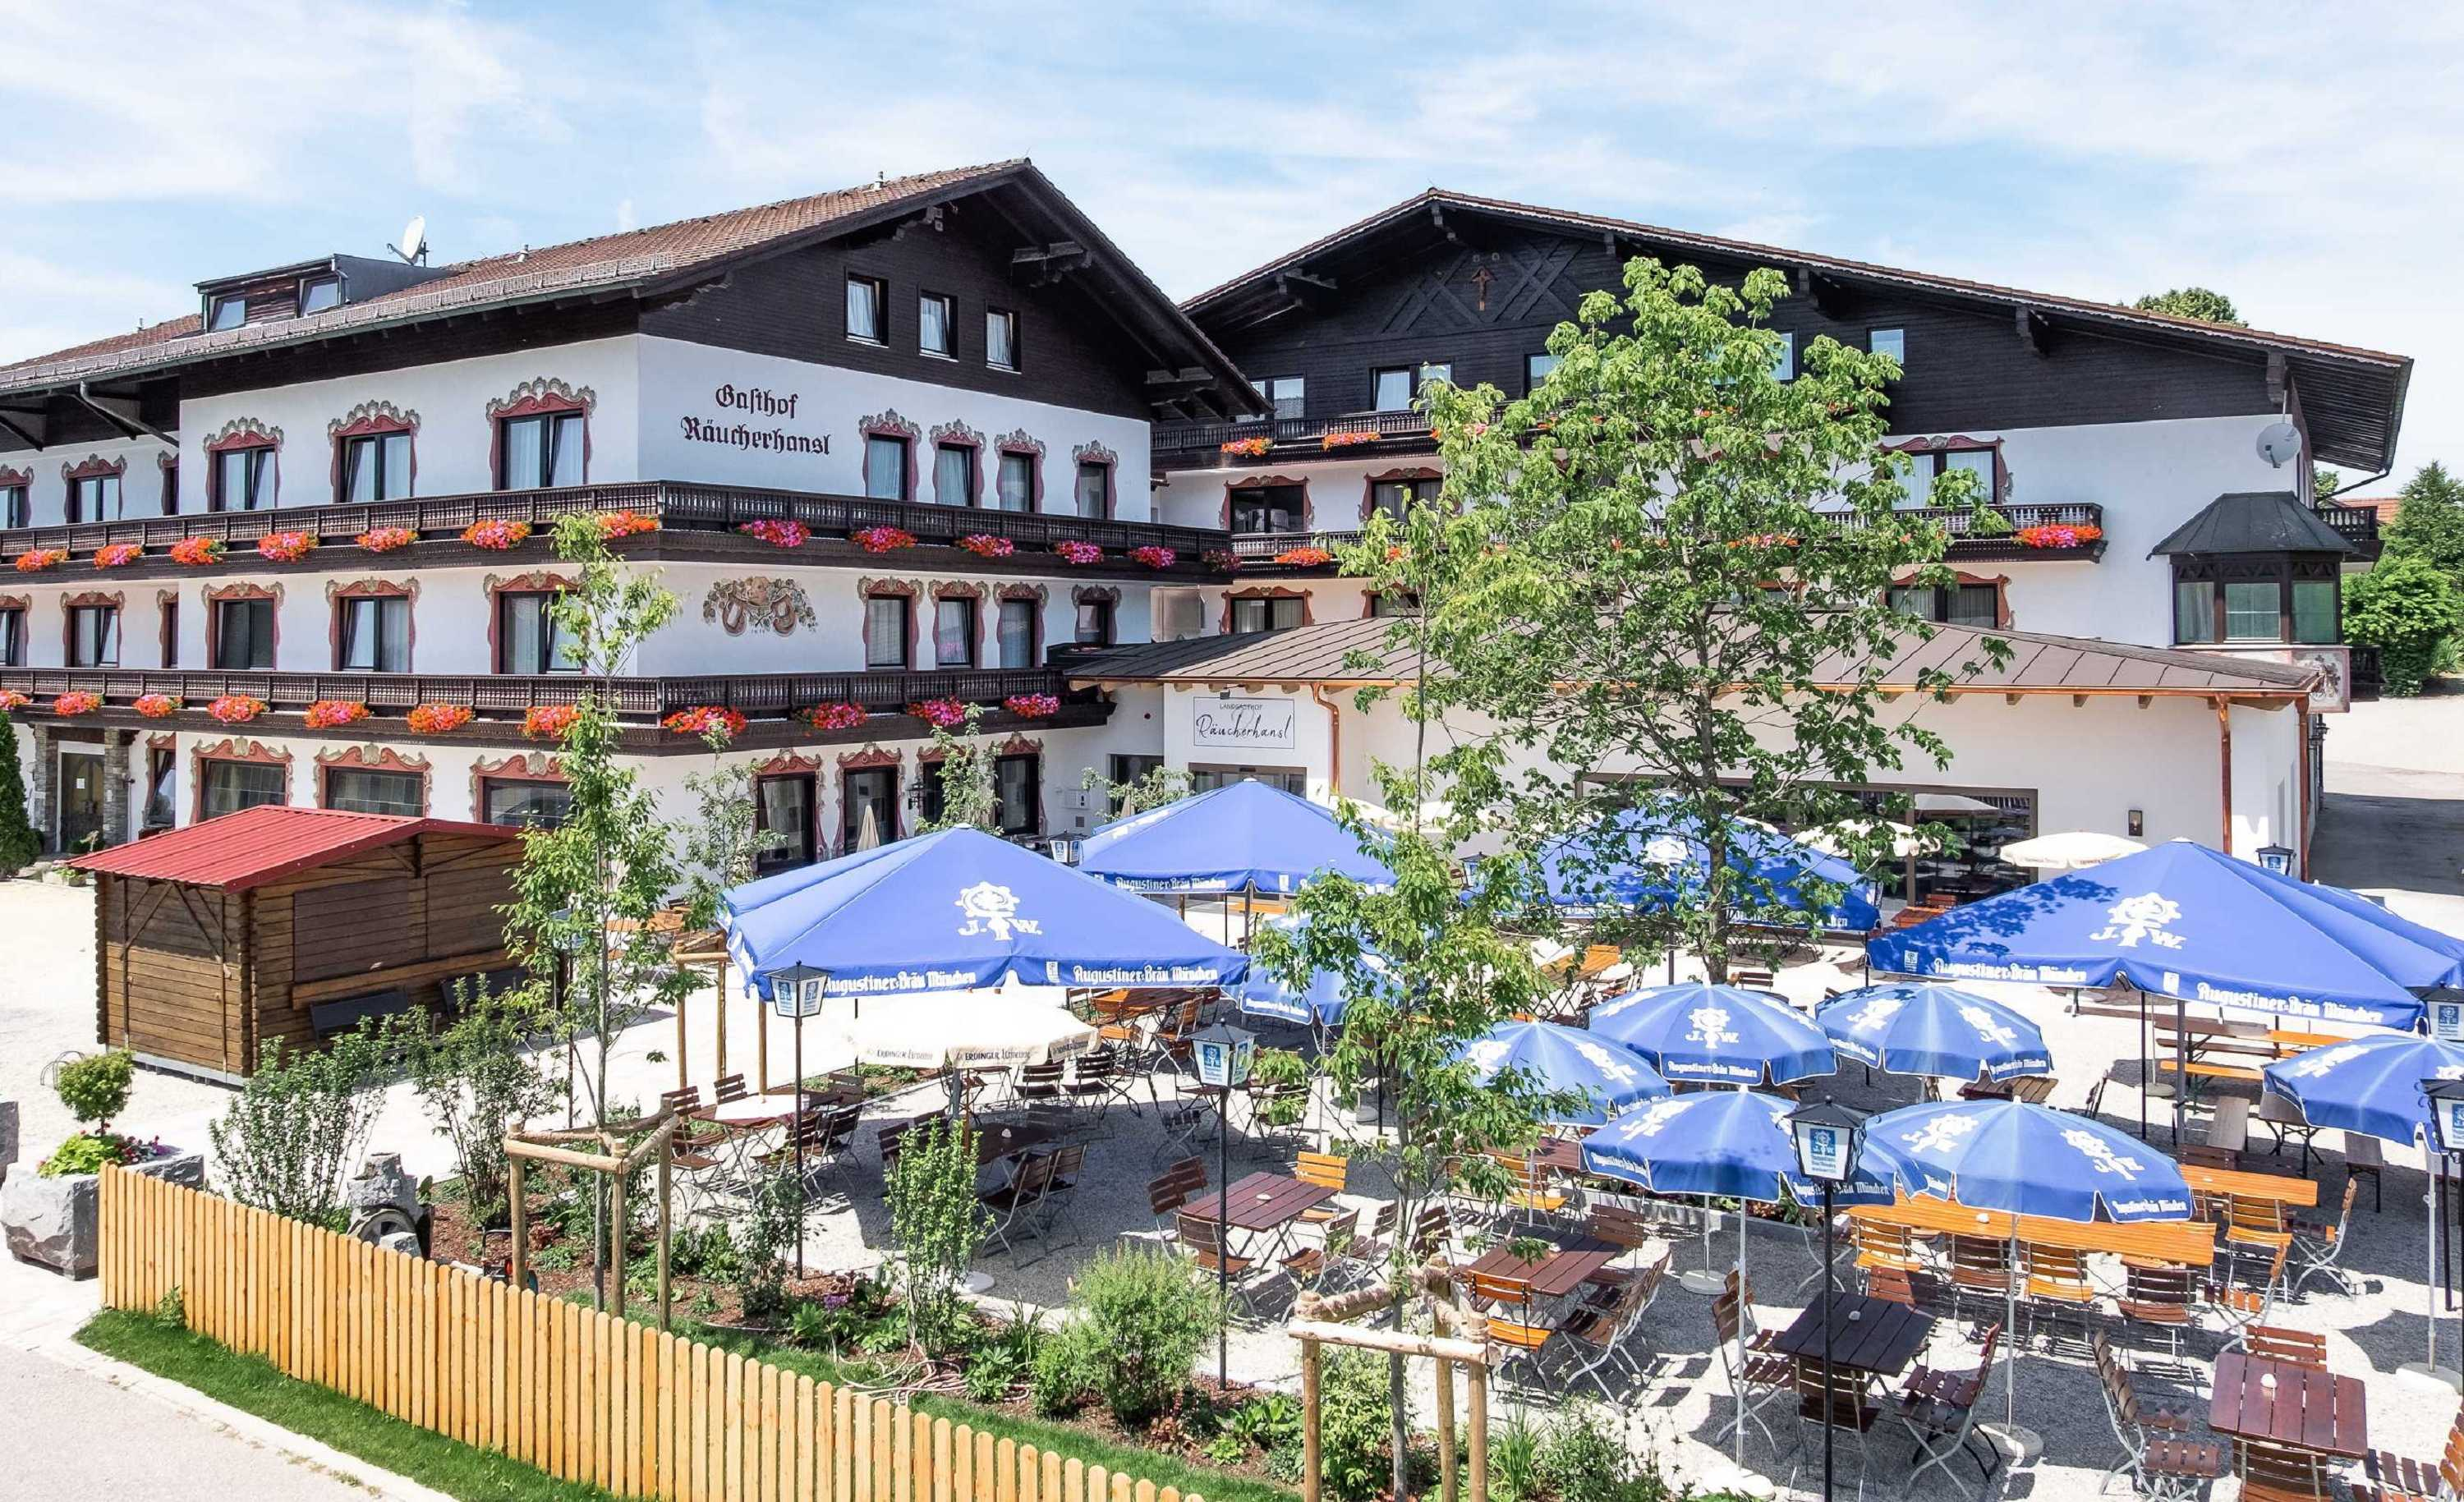 Hotel in Dingolfing